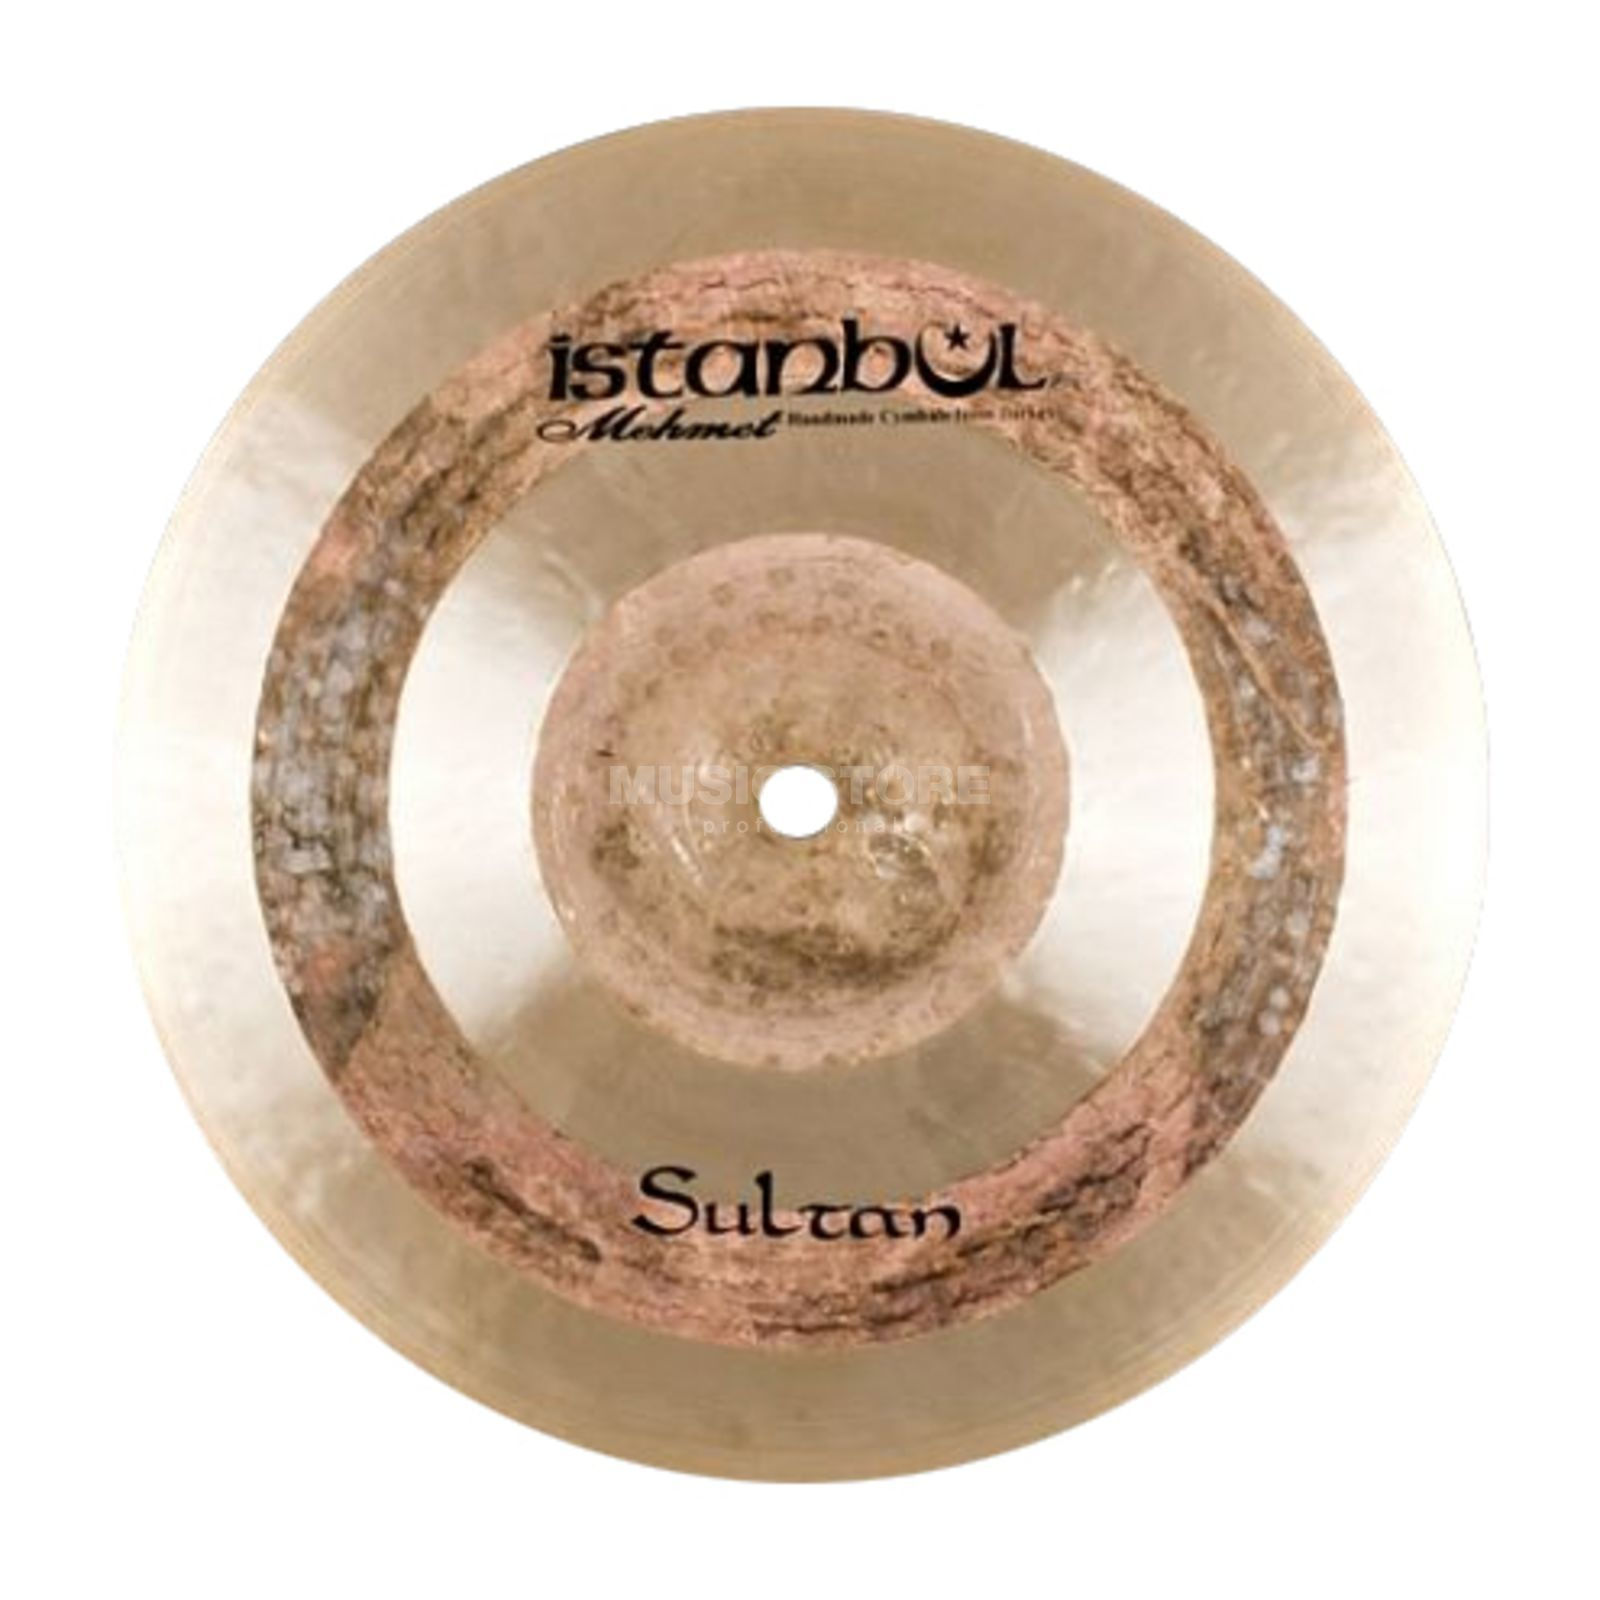 "Istanbul Sultan Splash 8"", SPS09 Product Image"